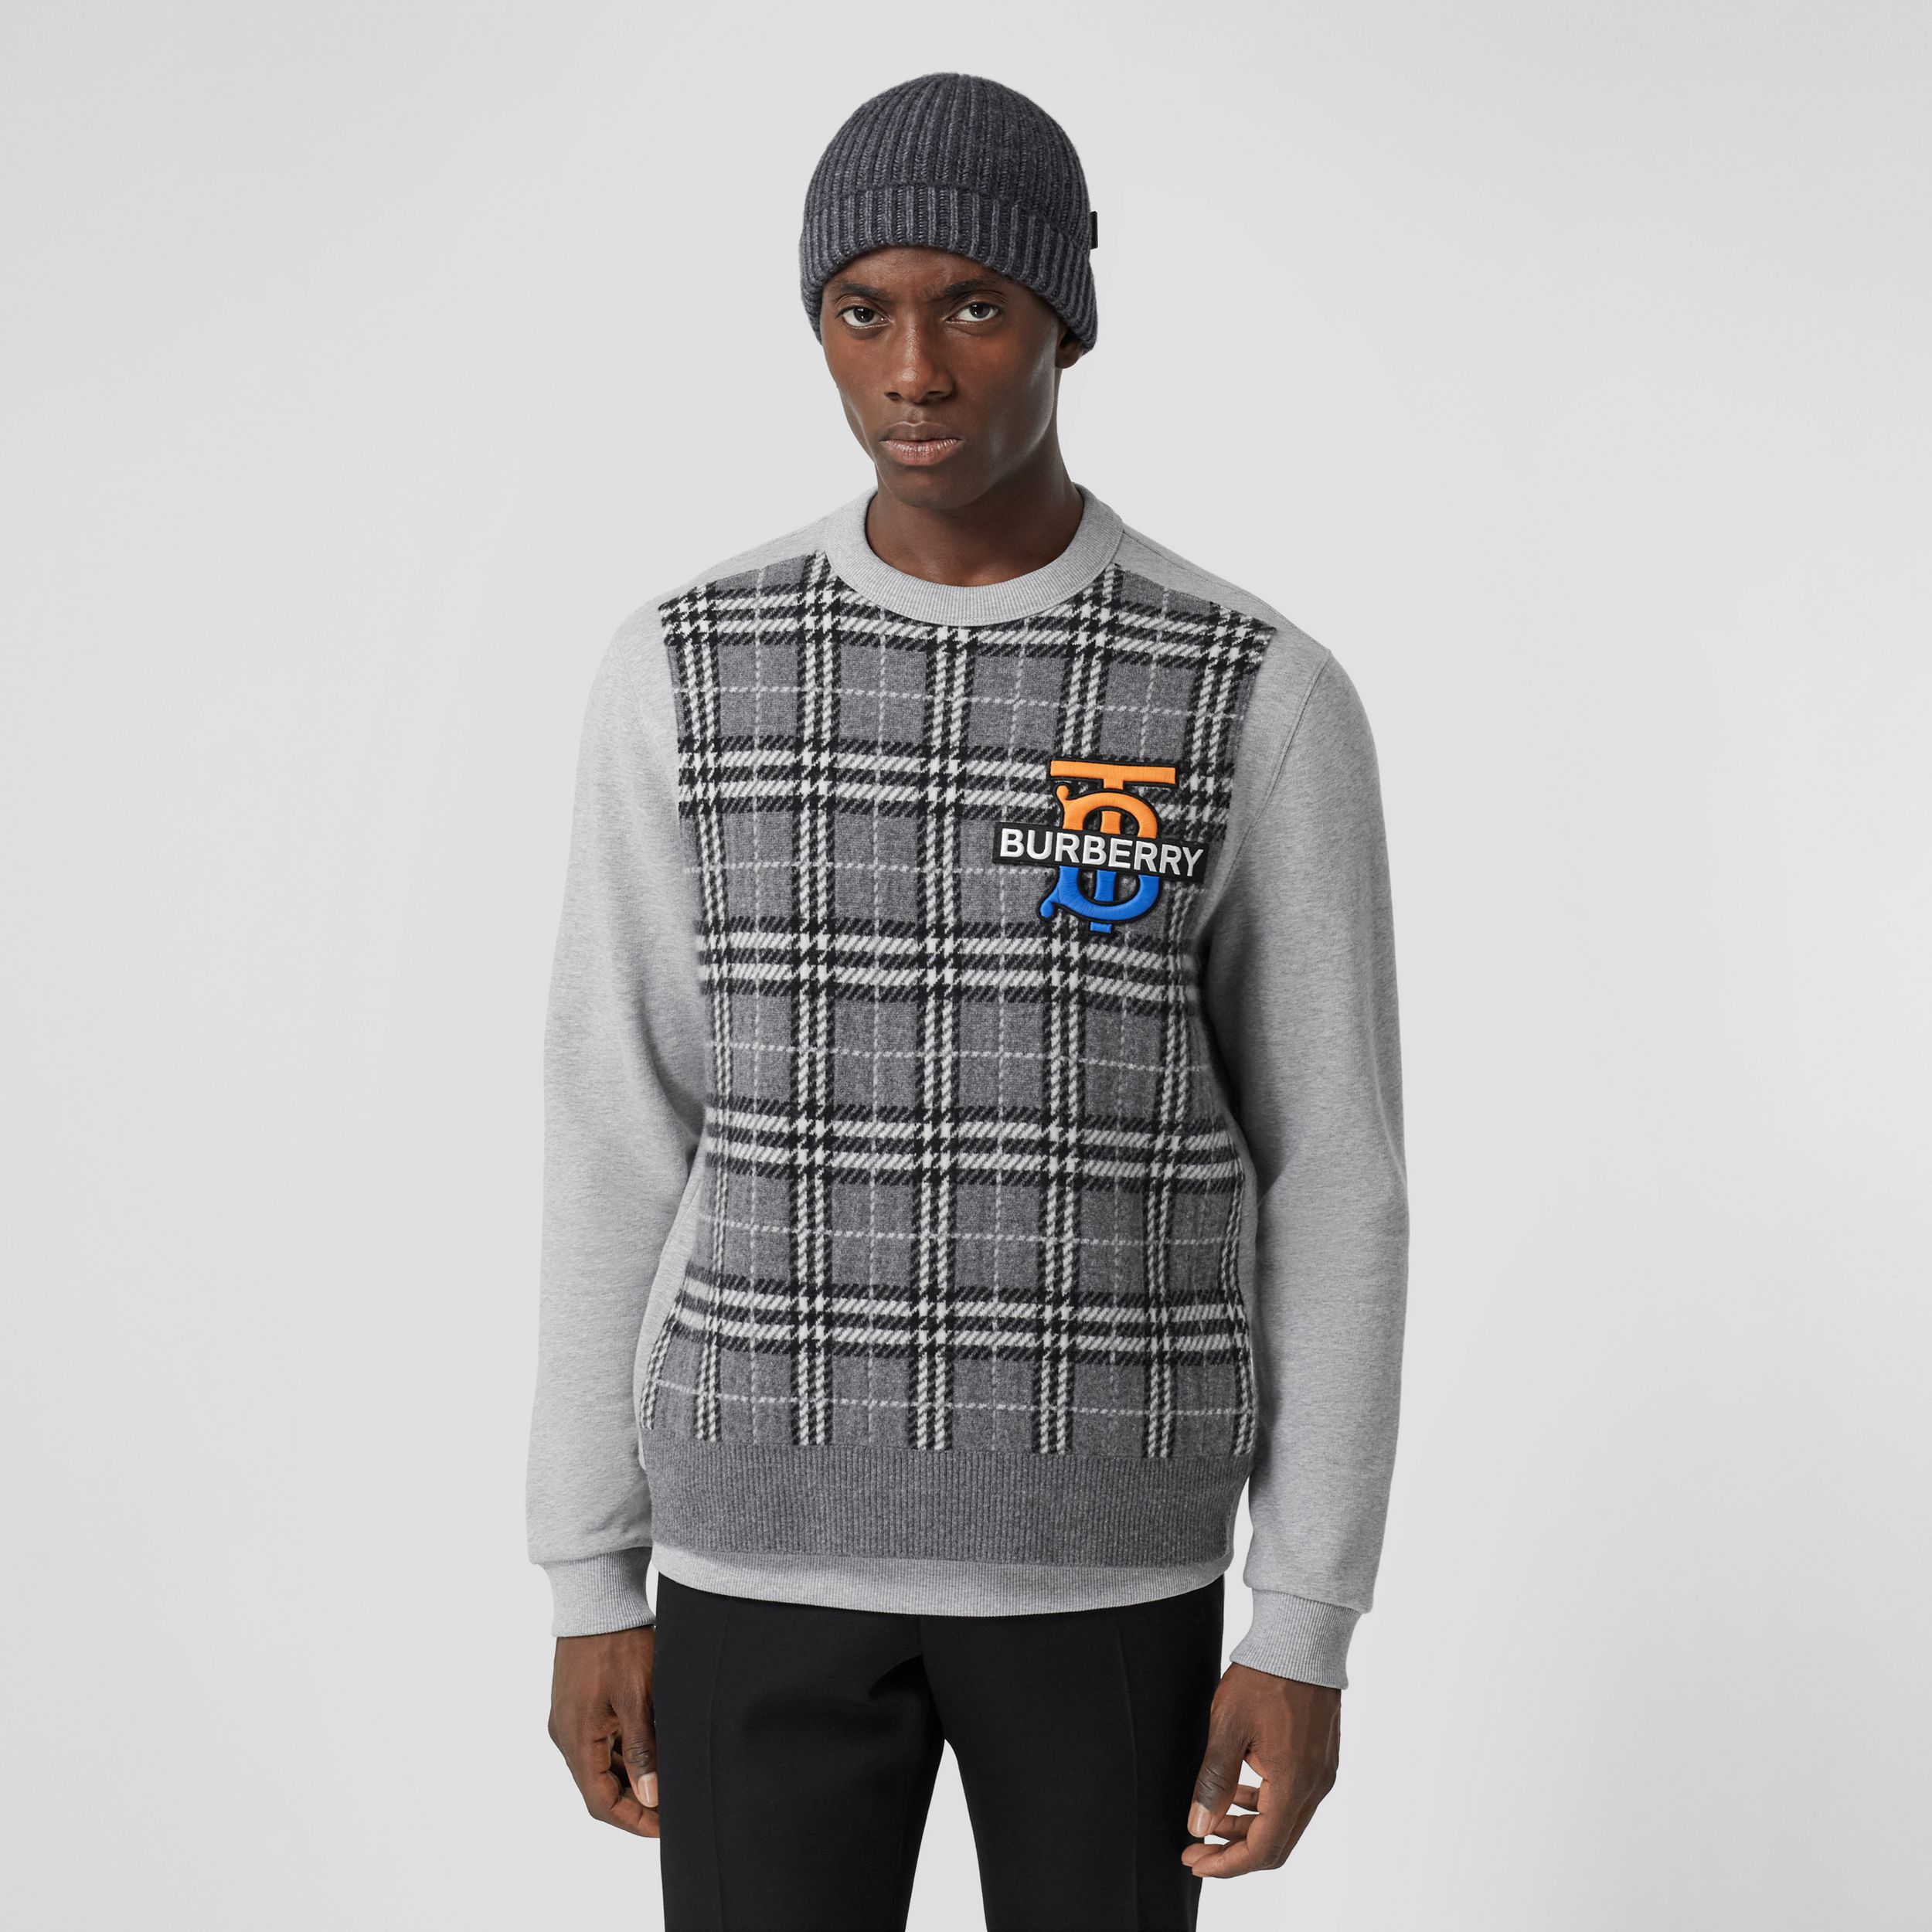 Monogram Motif Check Cashmere Panel Sweatshirt in Pale Grey Melange - Men | Burberry - 1